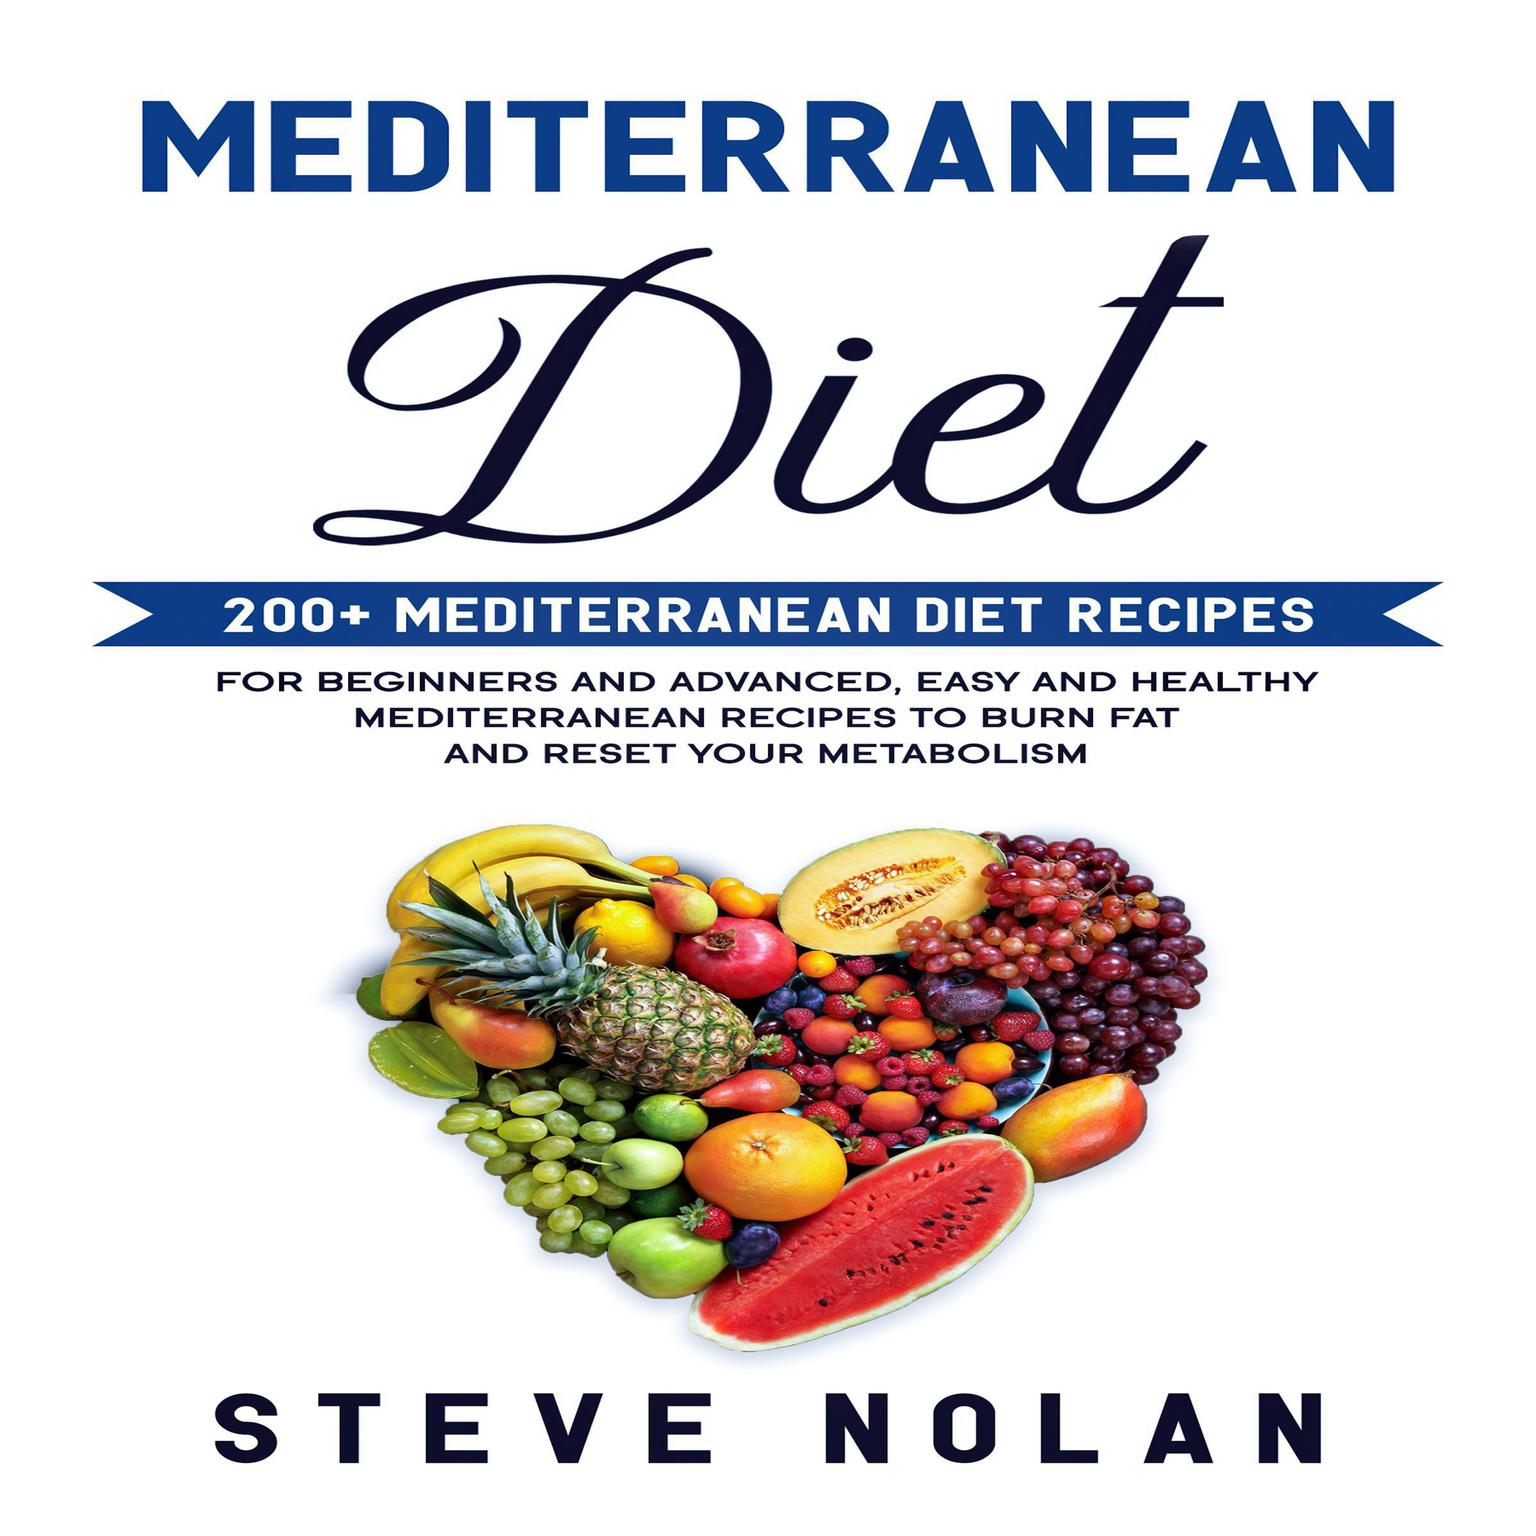 MEDITERRANEAN DIET: 200+ Mediterranean Diet Recipes for Beginners and Advanced,Easy and Healthy Mediterranean Recipes to Burn Fat and Reset Your Metabolism   Audiobook, by Steve Nolan